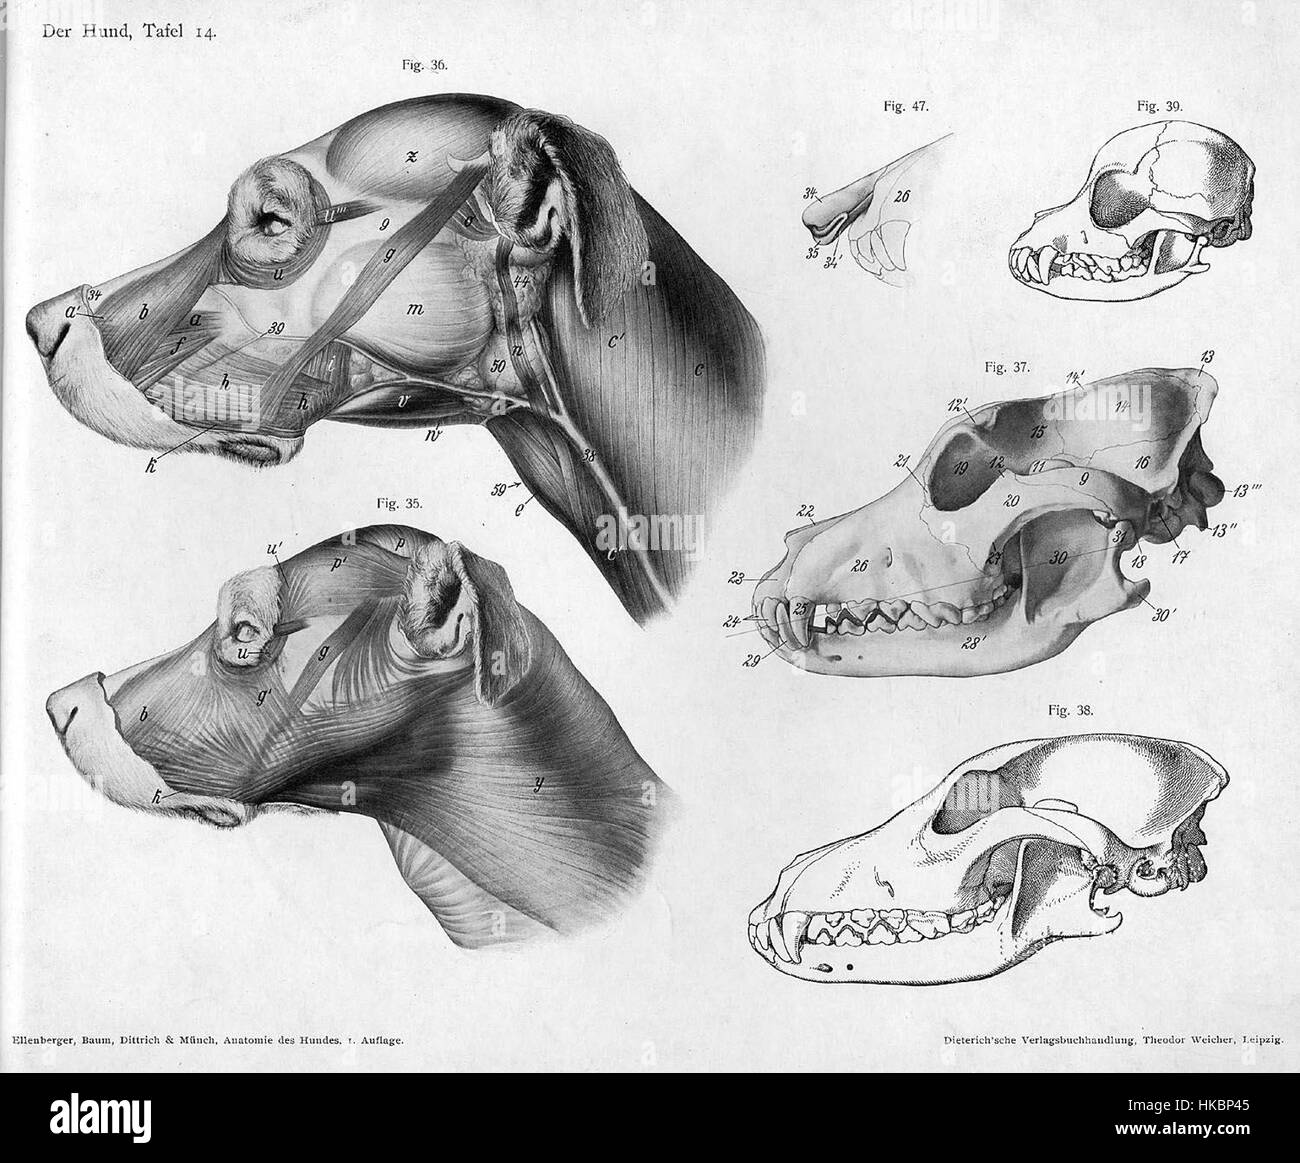 Dog anatomy head Stock Photo: 132409877 - Alamy